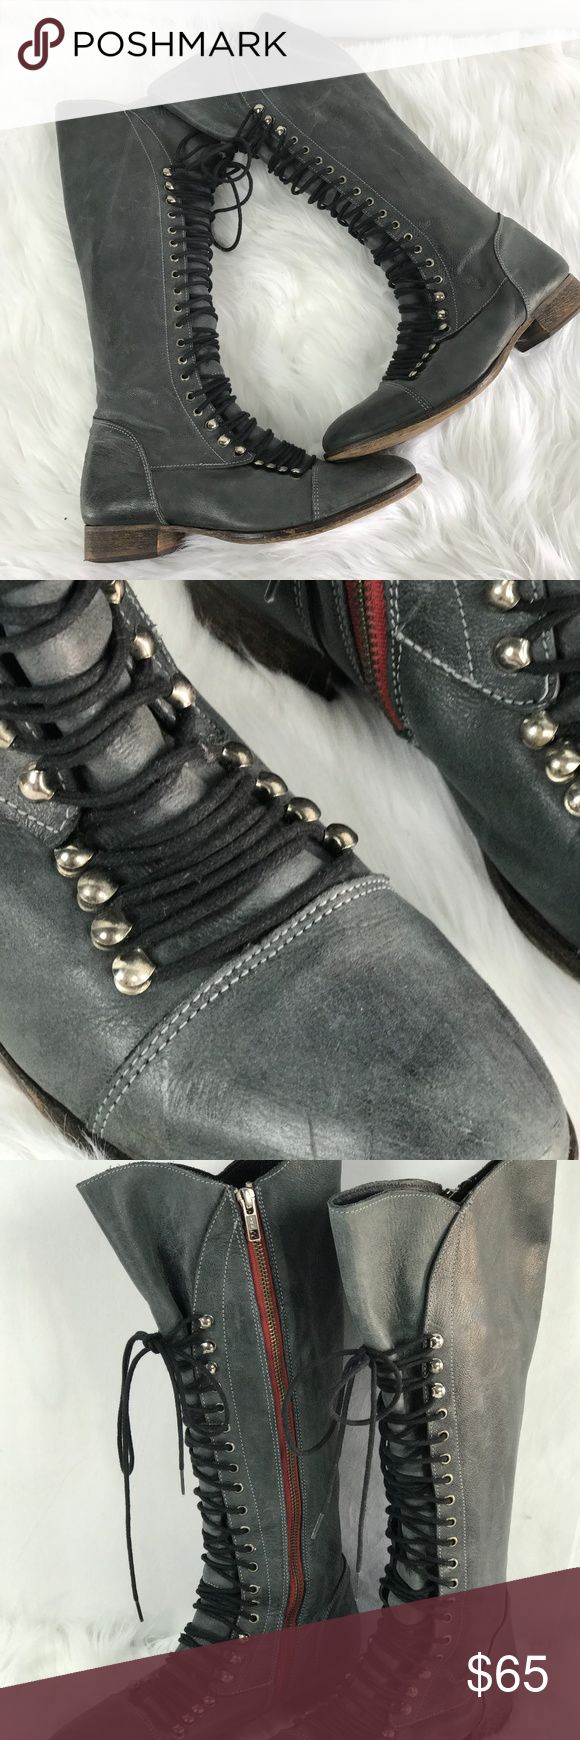 Steve Madden Gray Tall Lace Up Boots Size 9.5 Steve Madden Perrin Gray Tall Lace Up Inside Zip Up Boots. Size 9.5. Gently used. No flaws. Steve Madden Shoes Lace Up Boots